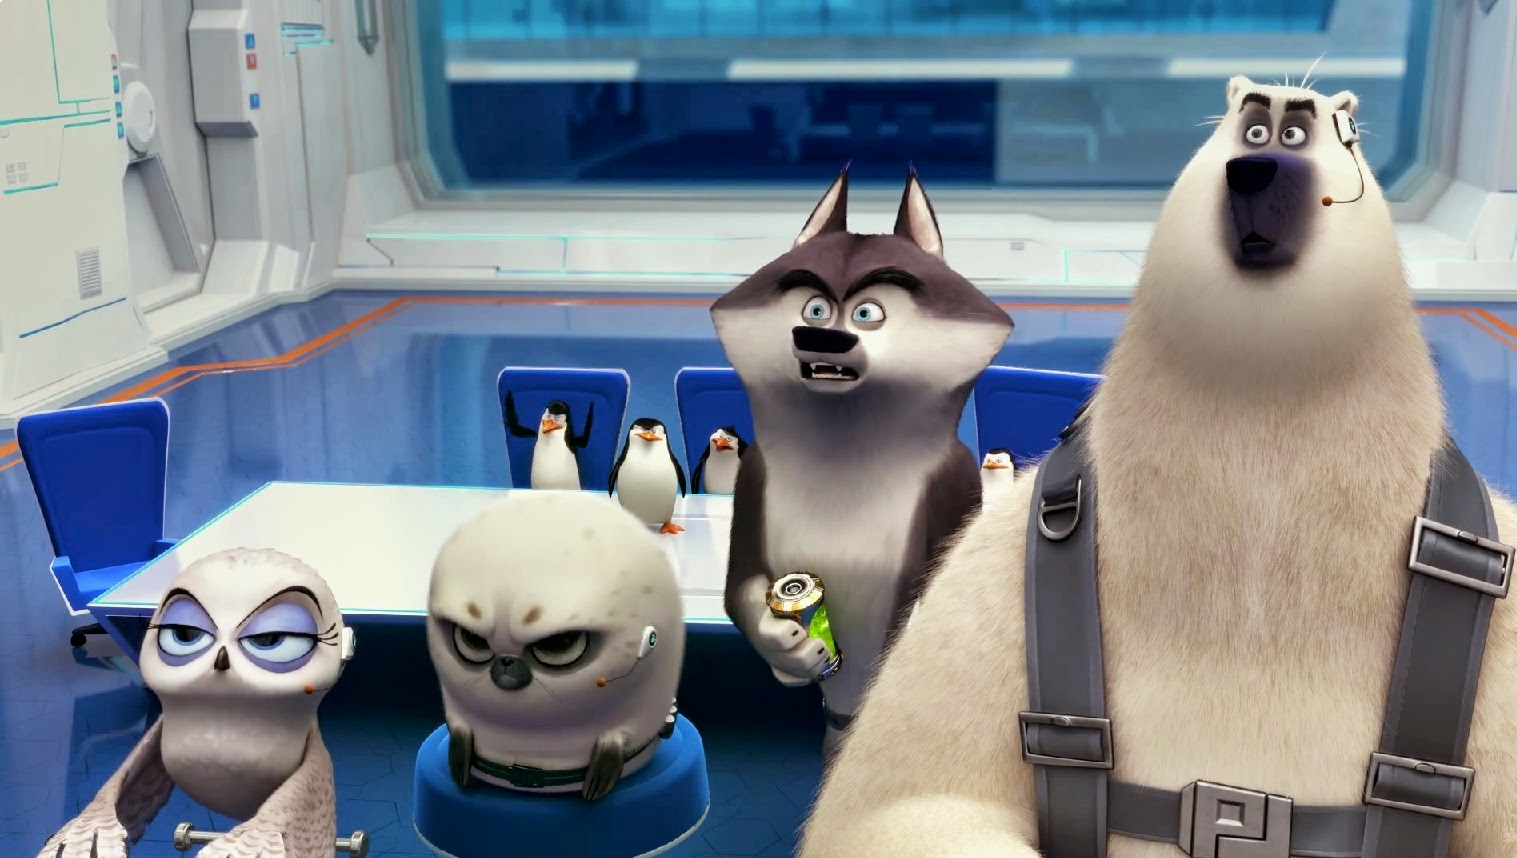 penguins of madagascar full movie download free hd